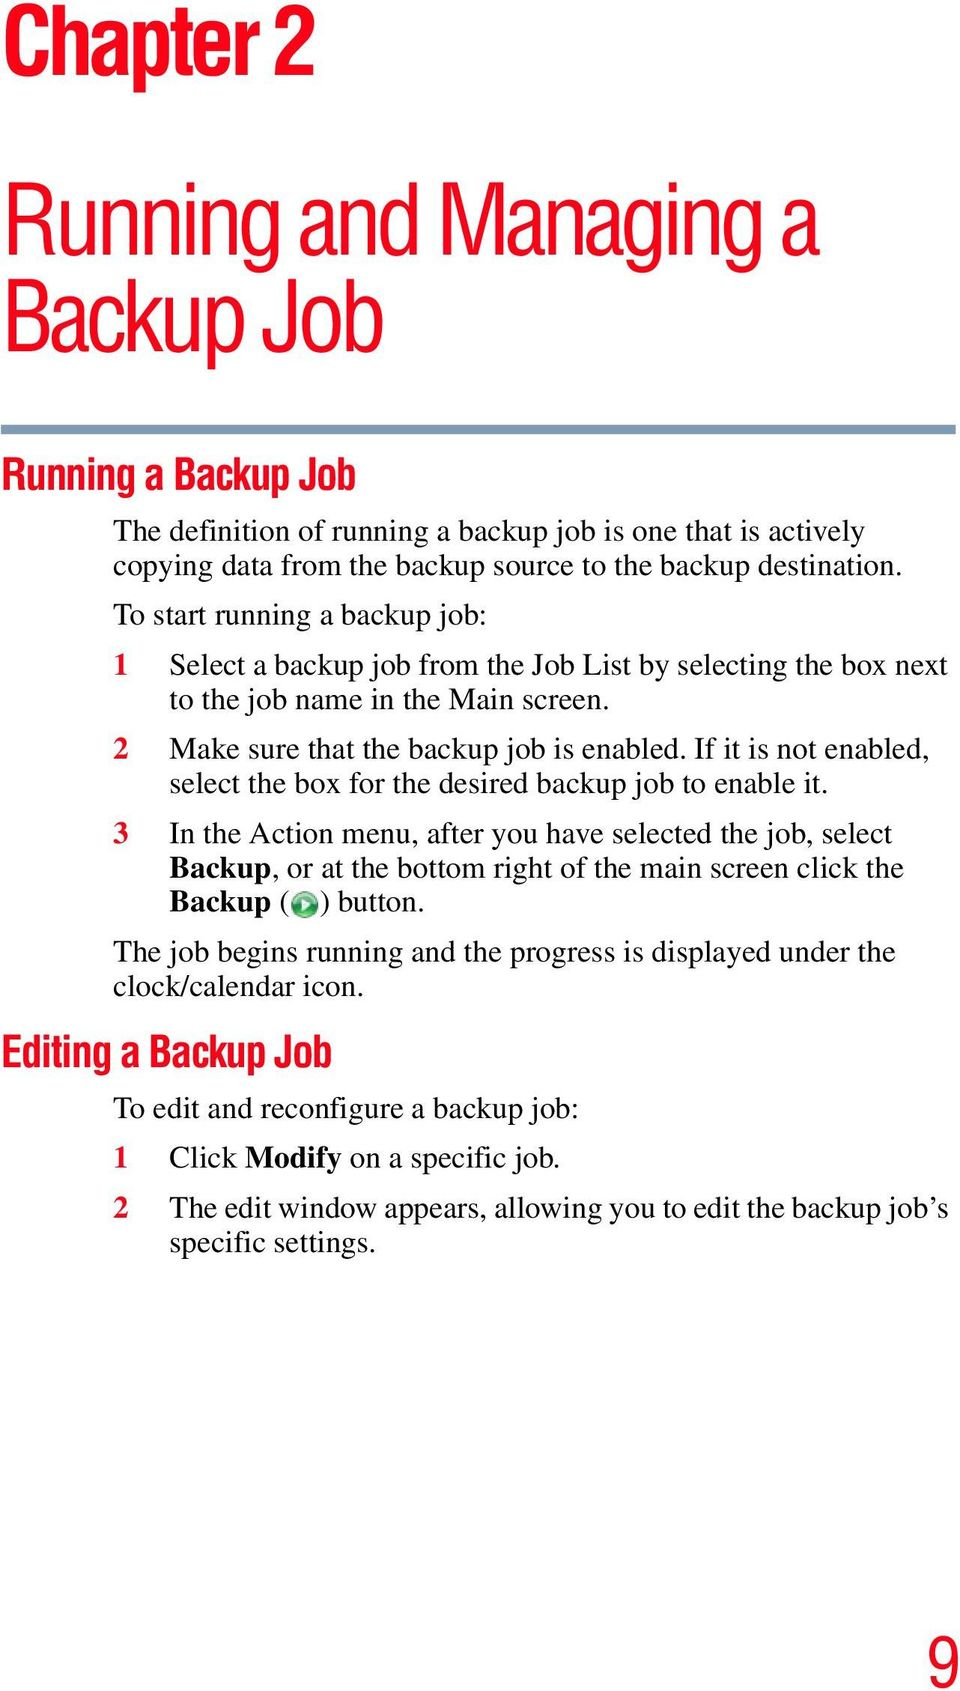 If it is not enabled, select the box for the desired backup job to enable it.